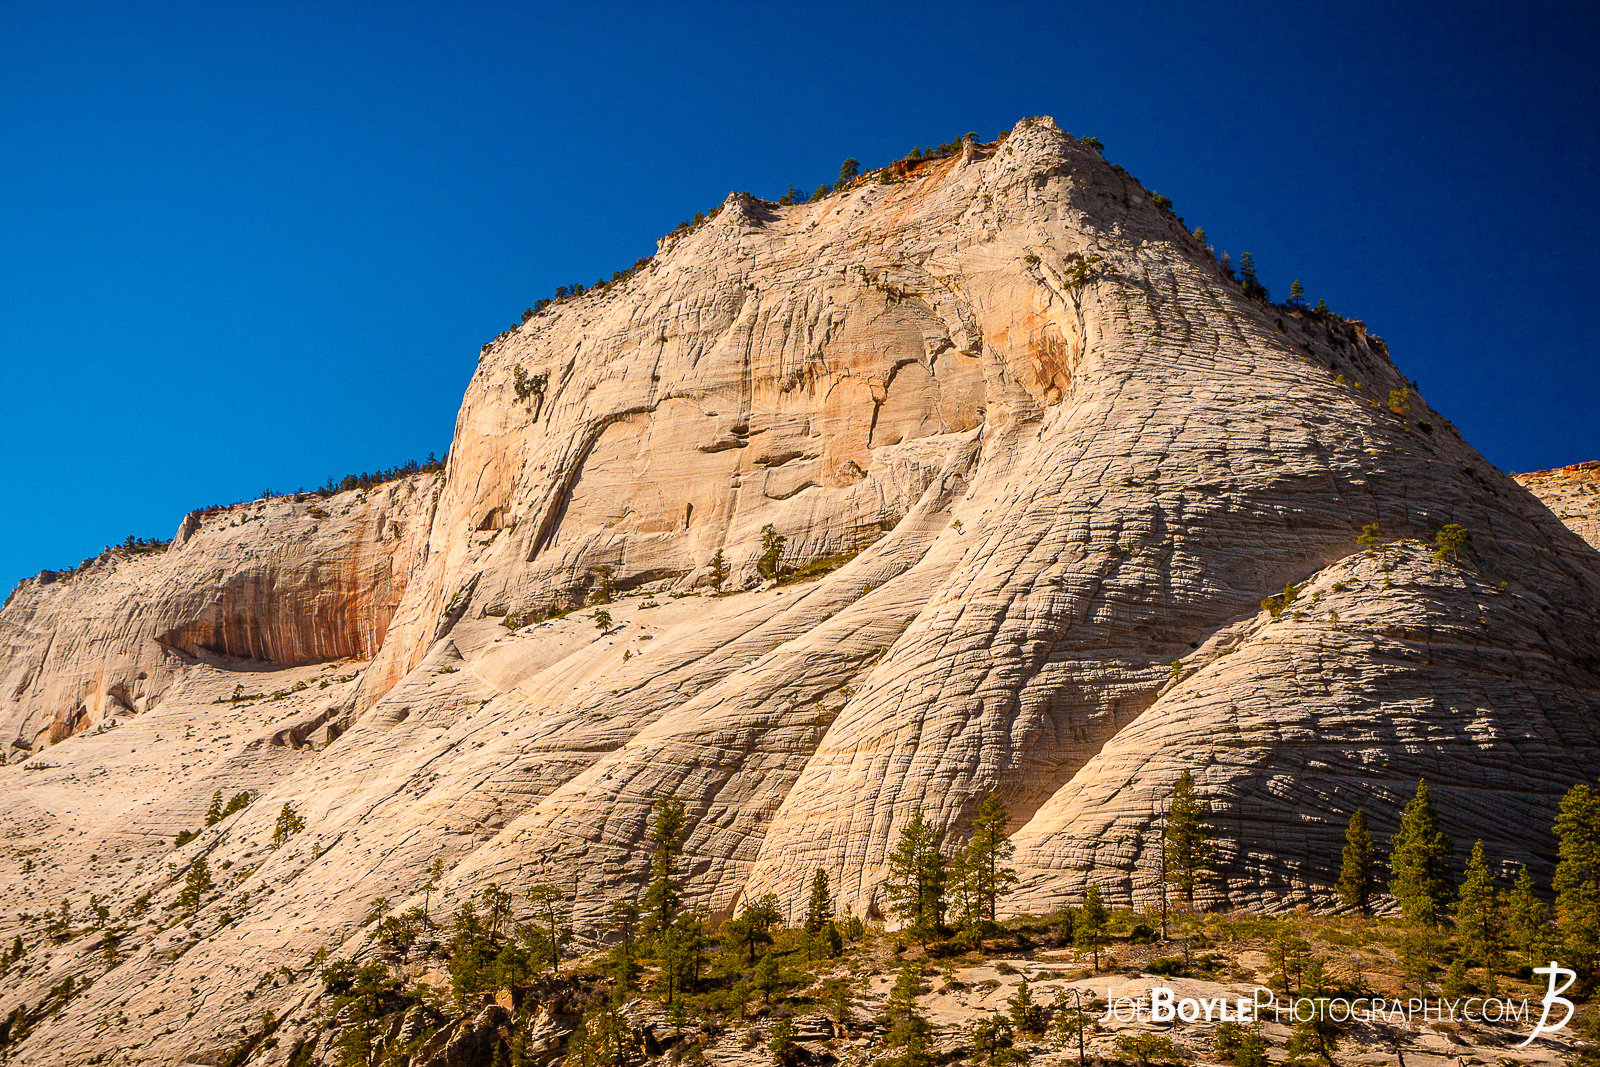 While hiking on the West Rim Trail in Zion National Park my hiking buddy and I were able to see many mountains, canyons and valleys! This is a photo of a canyon cliff face we saw along our way! We spent a few nights hiking this trail to the end of the West Rim Trail. We finished up this leg of the trip hiking Angel's Landing and exited at The Grotto.  Here are some links to more articles and hiking info about the West Rim Trail and hiking trails in Zion National Park and a Map of Zion National Park.